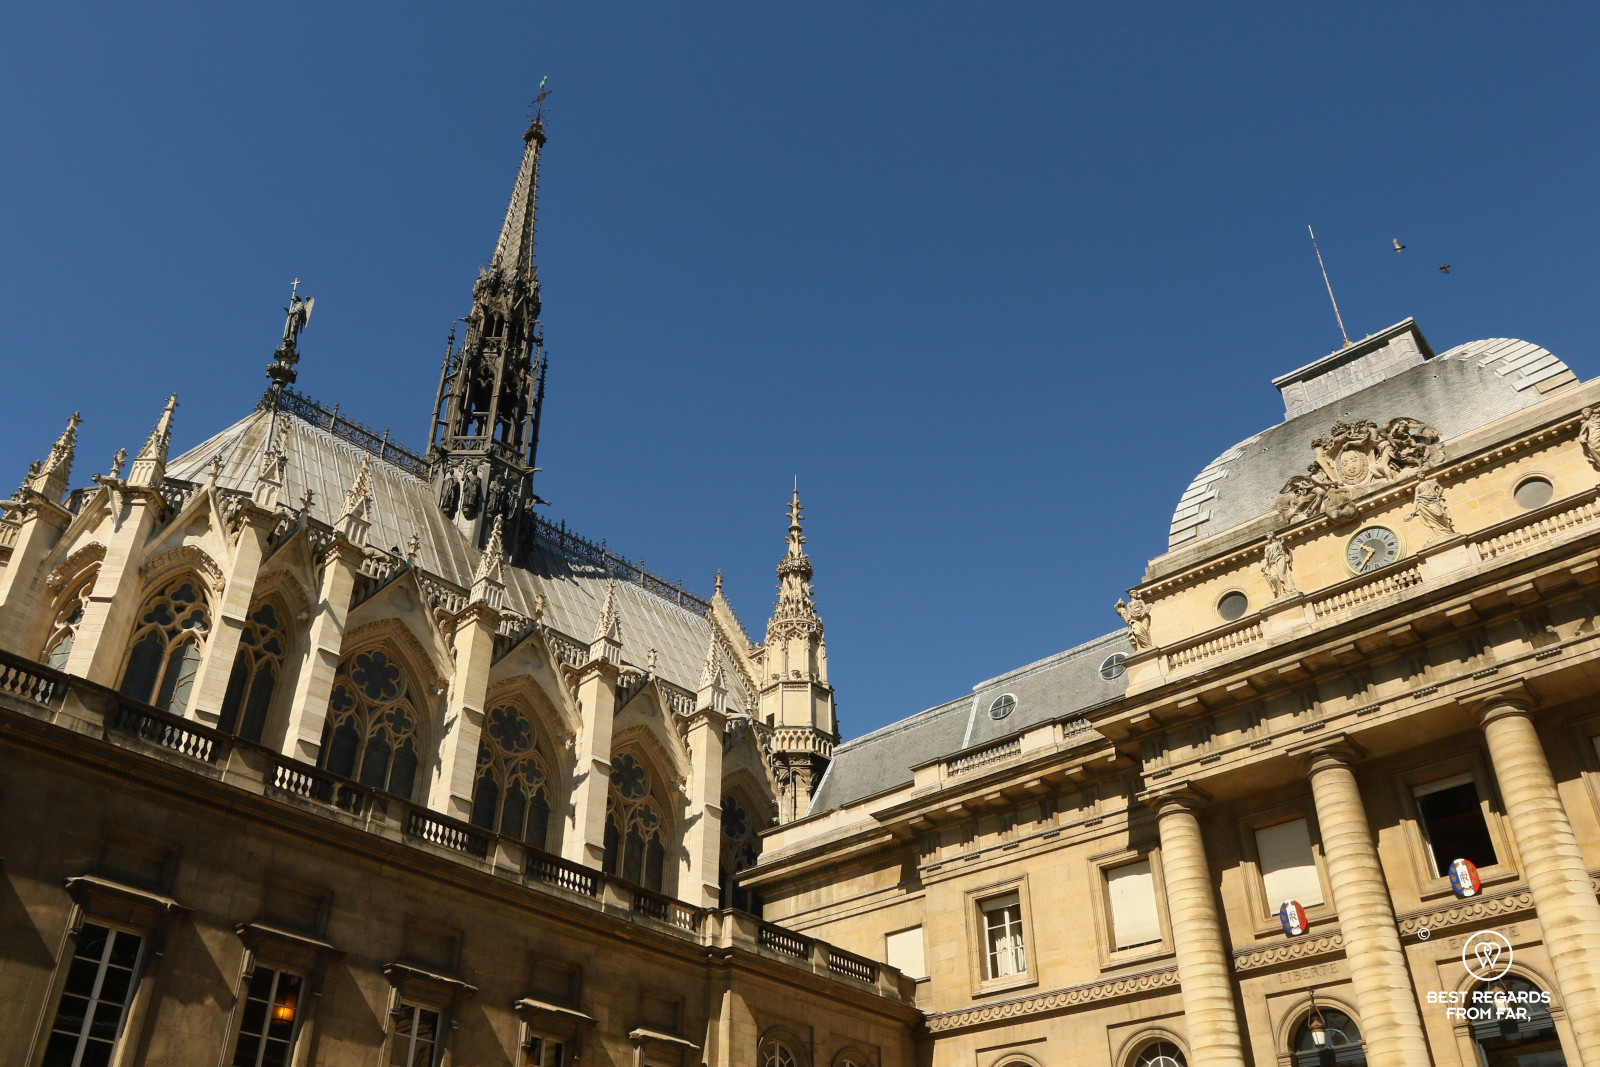 The exterior of La Sainte Chapelle in Paris, France contrasting with blue skies